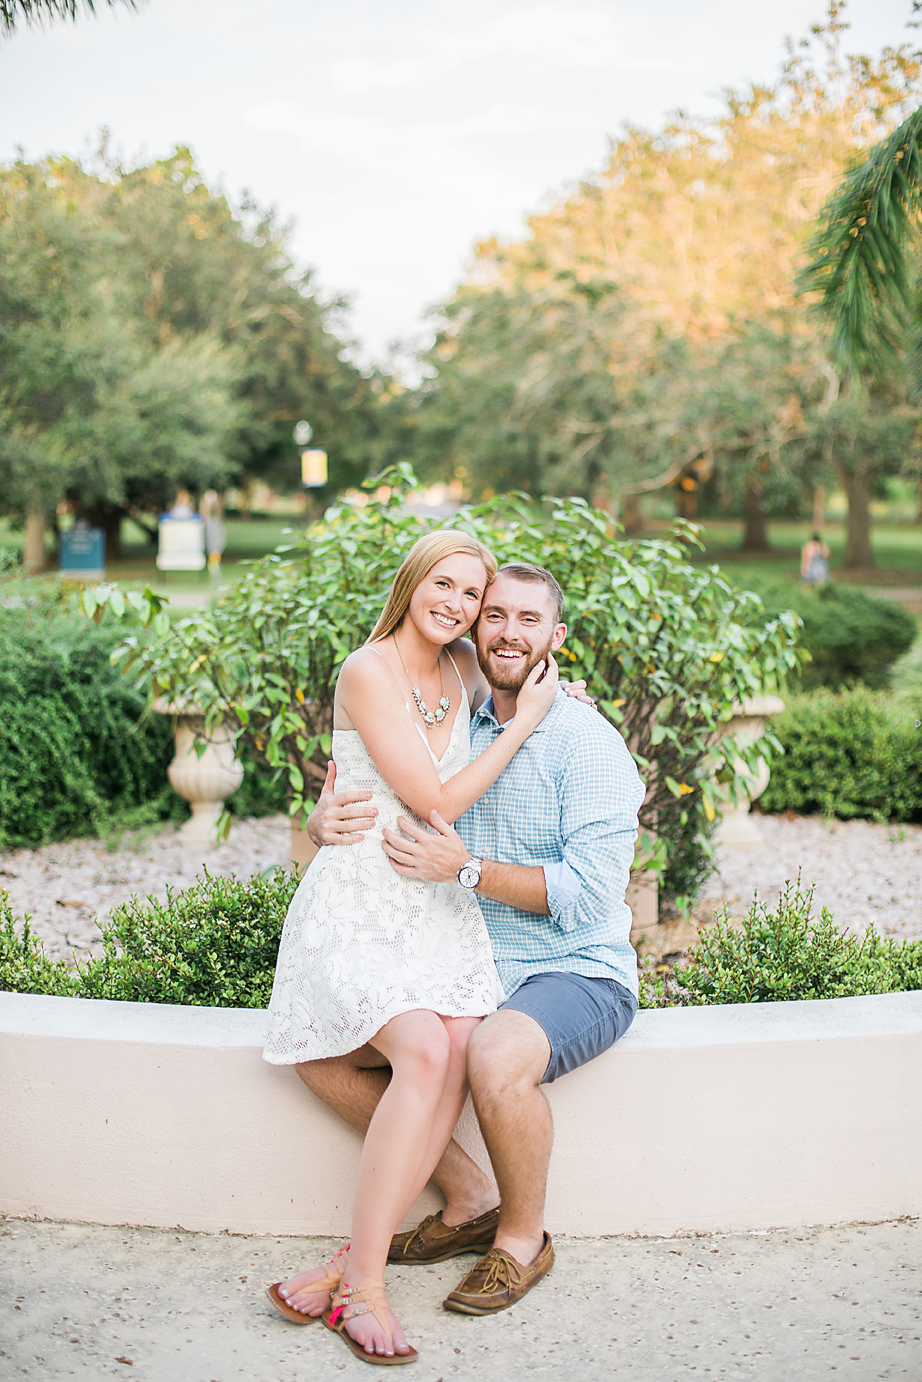 Lindsey +  Matthew - Sarasota Engagement Photographer - Sarasota Wedding Photographer - Emily & Co. Photography (3).jpg